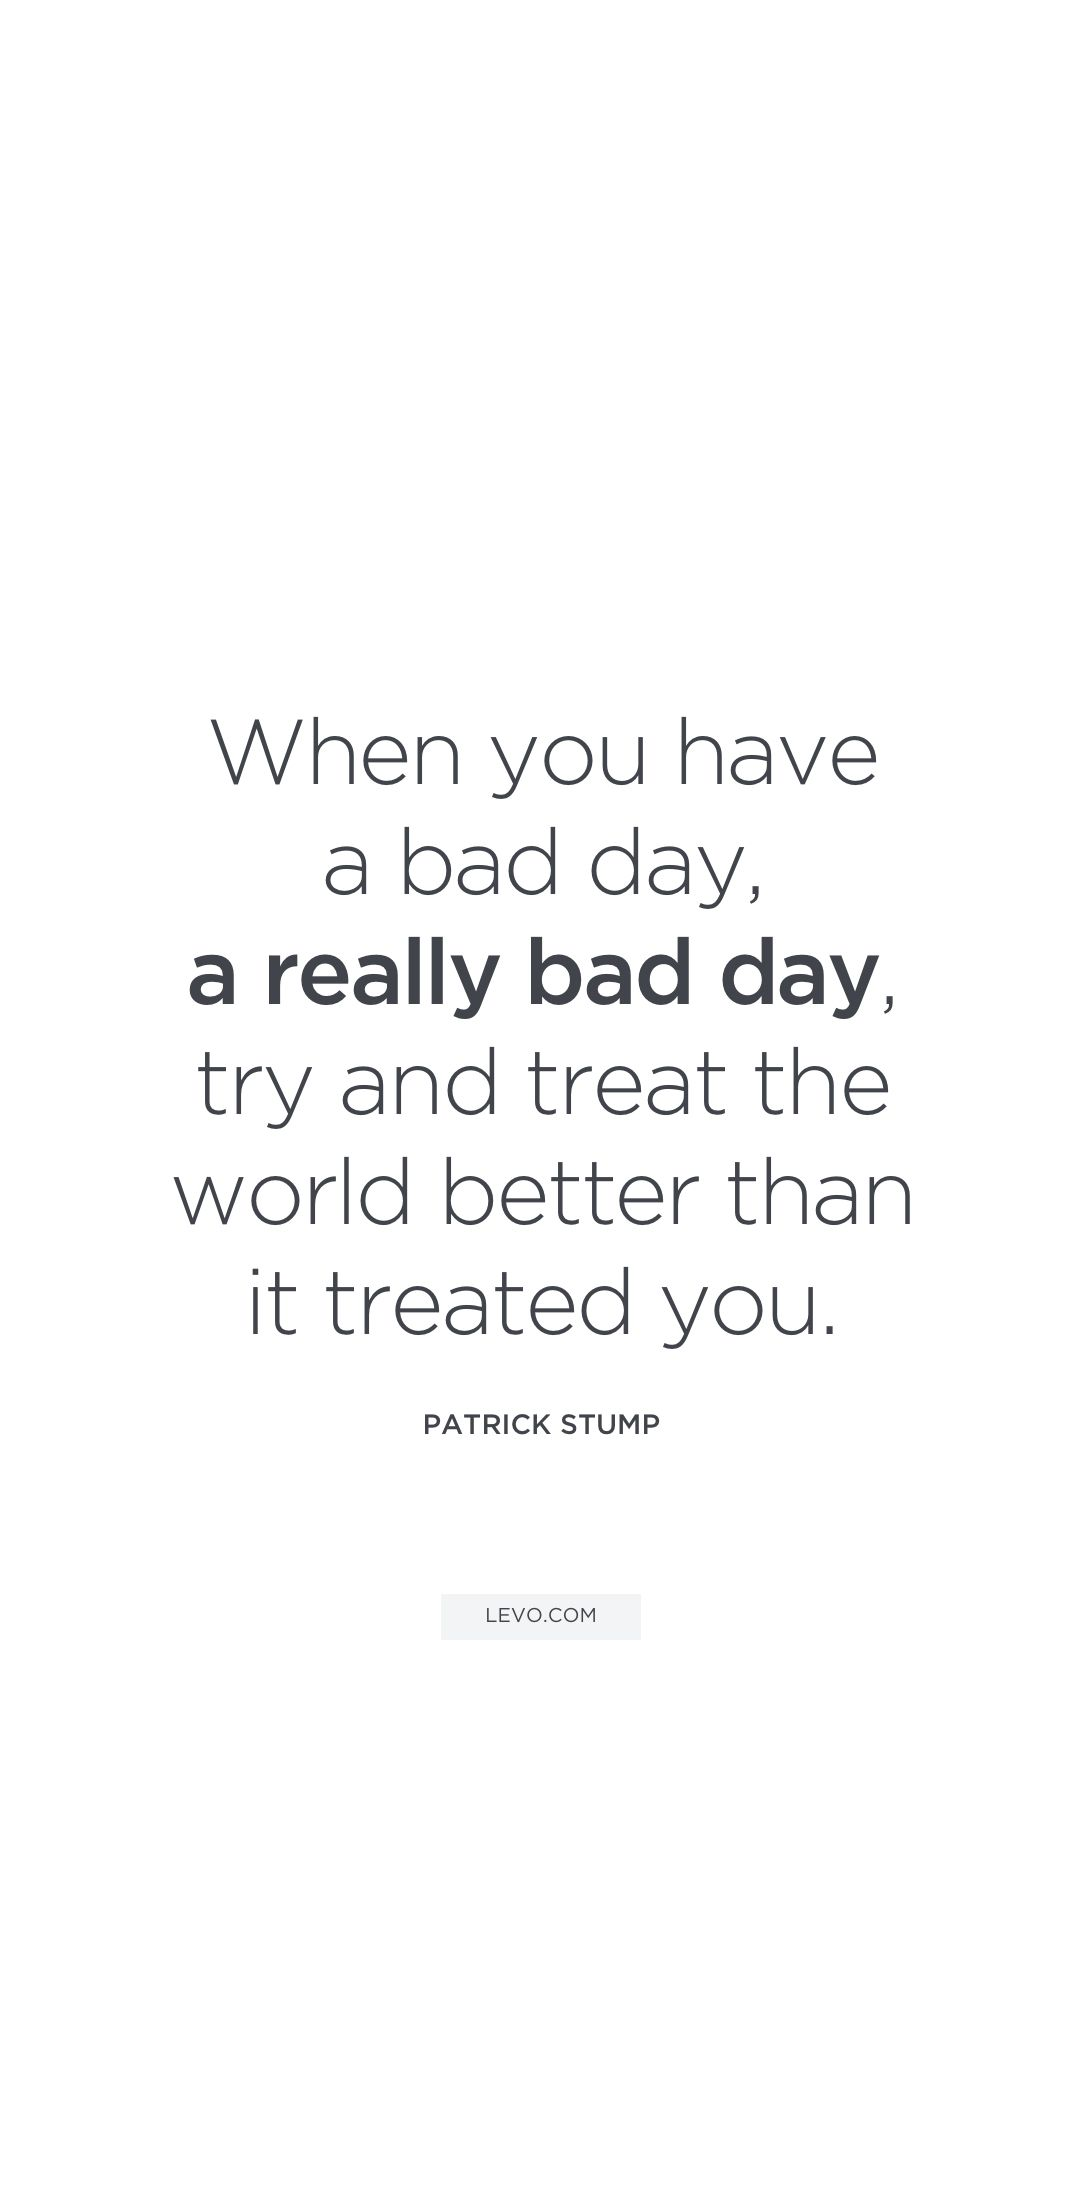 Positive Quotes For A Bad Day : positive, quotes, Uplifting, Quotes, Inspire, Patrick, Stump, Quotes,